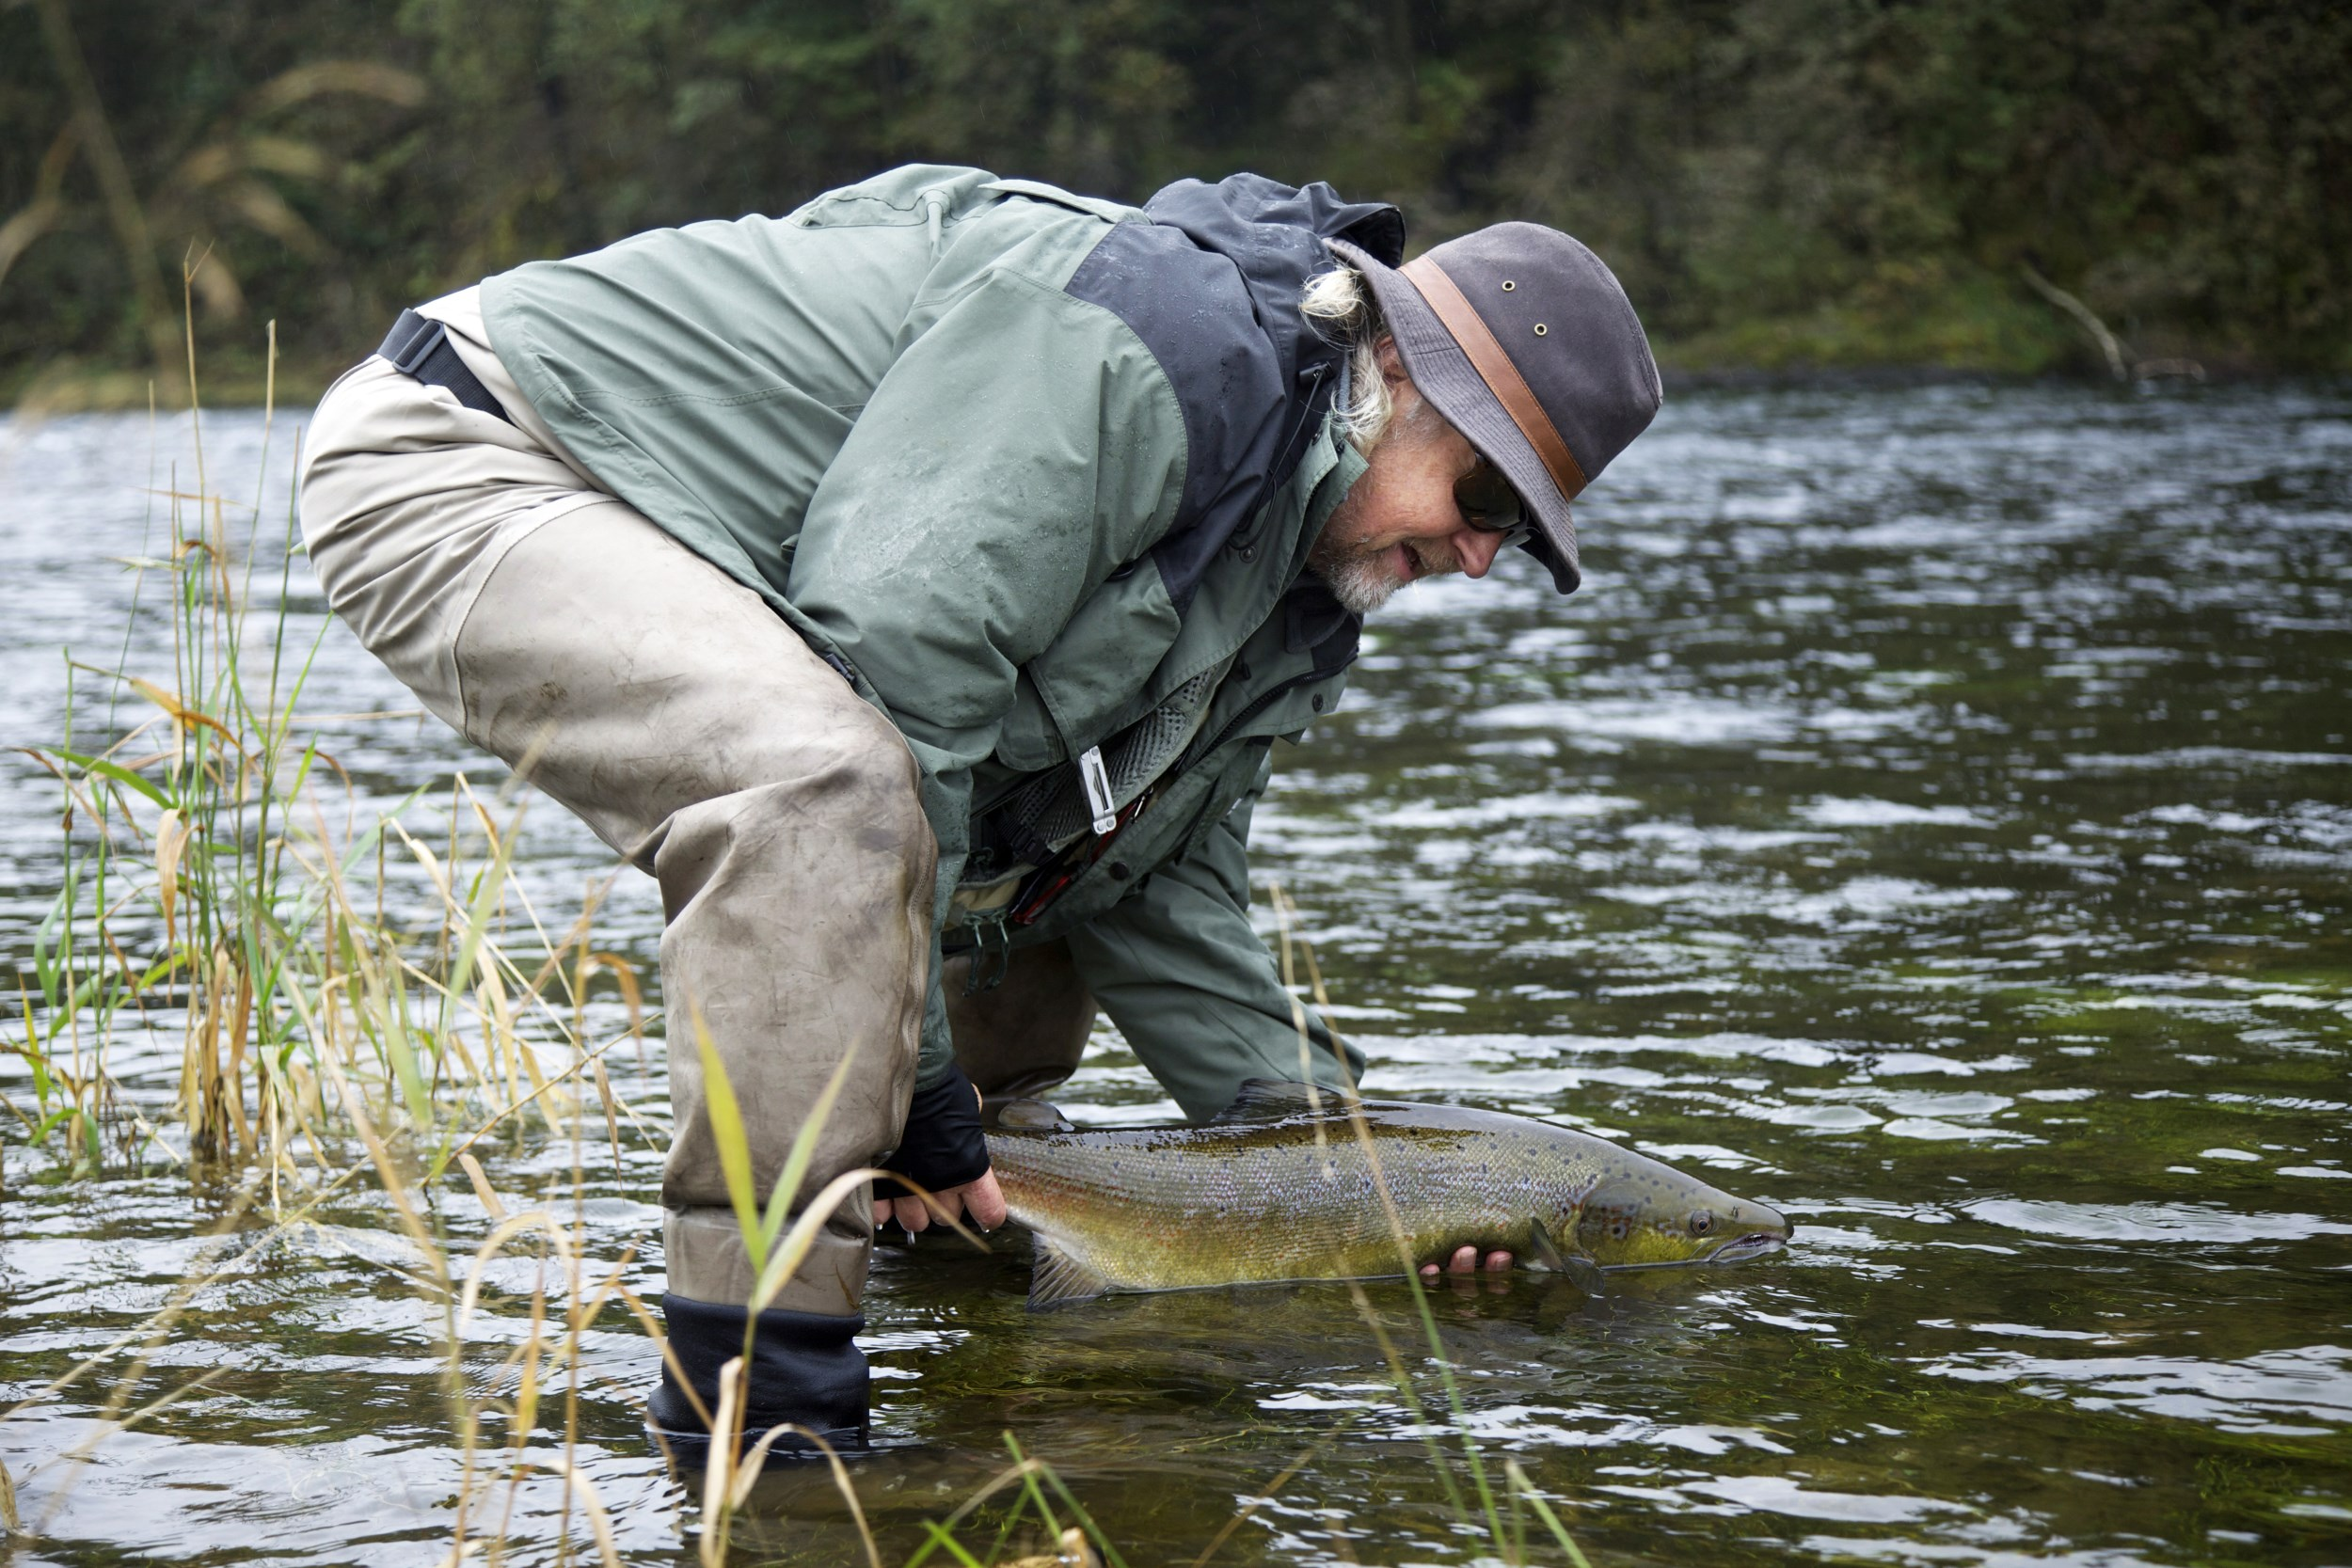 Picture of salmon fishing in Suldalslågen river